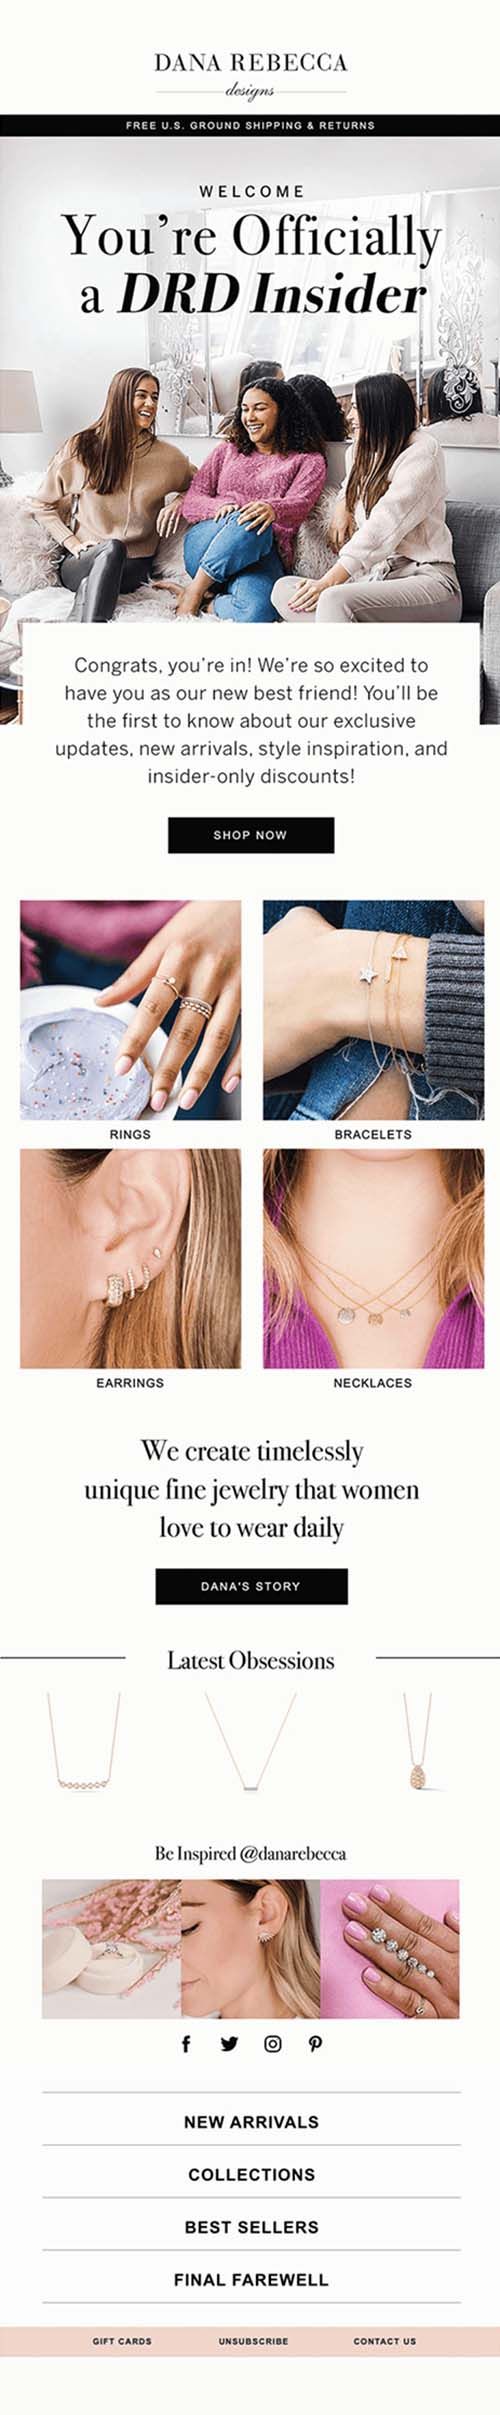 Luxury Jewelry Klaviyo Agency Marketing Email Graphic With Ladies On Couch